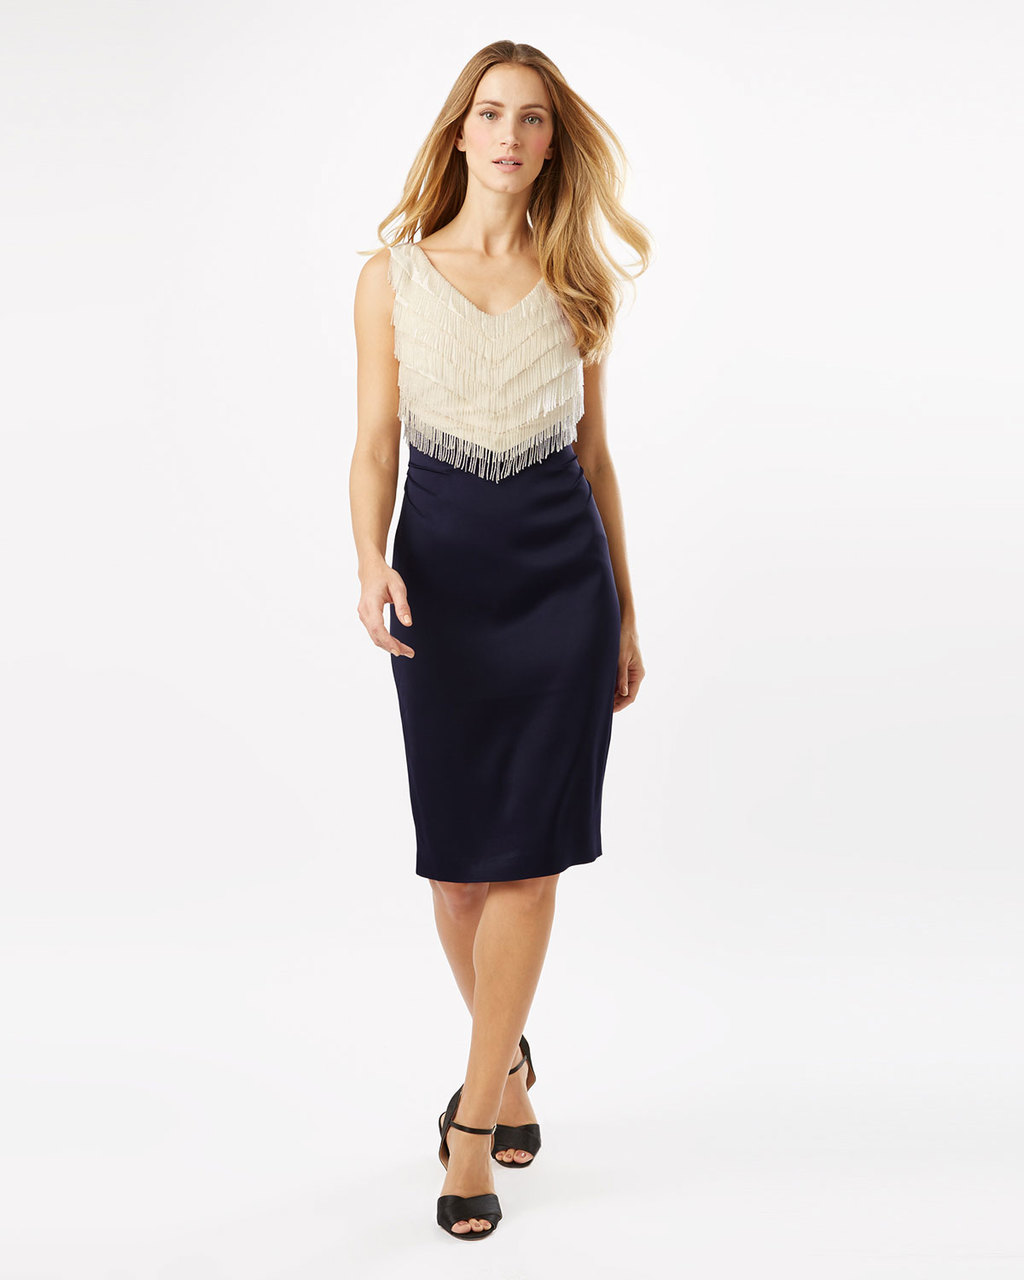 Dress Six - style: shift; neckline: v-neck; fit: tailored/fitted; sleeve style: sleeveless; waist detail: fitted waist; predominant colour: ivory/cream; secondary colour: navy; length: on the knee; fibres: polyester/polyamide - stretch; occasions: occasion; sleeve length: sleeveless; pattern type: fabric; pattern: colourblock; texture group: other - light to midweight; season: s/s 2016; wardrobe: event; embellishment location: bust